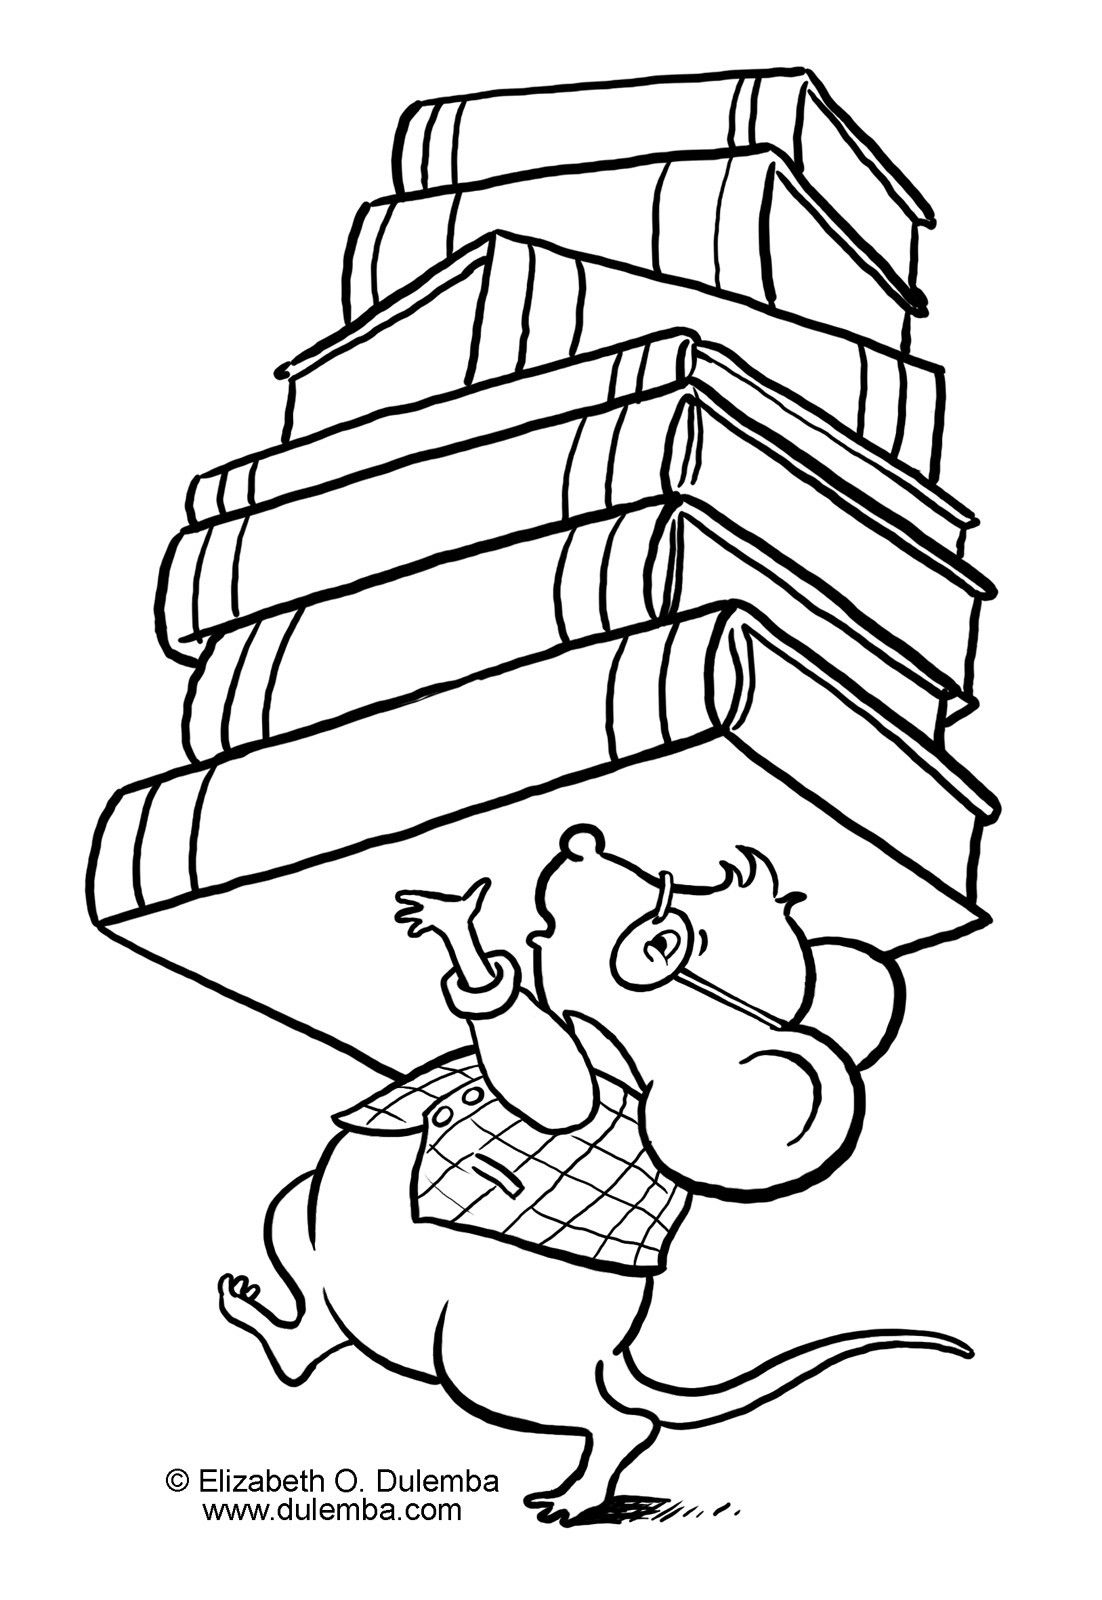 Explore coloring pages for kids coloring sheets and more